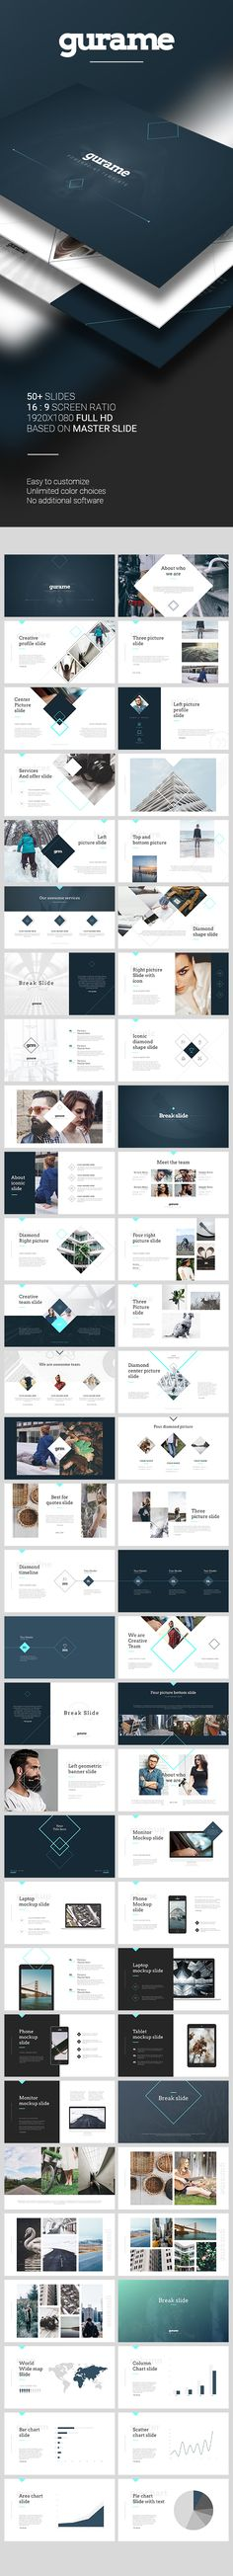 Gurame PowerPoint Template. Download here: https://graphicriver.net/item/gurame-powerpoint-template/16959387?ref=ksioks